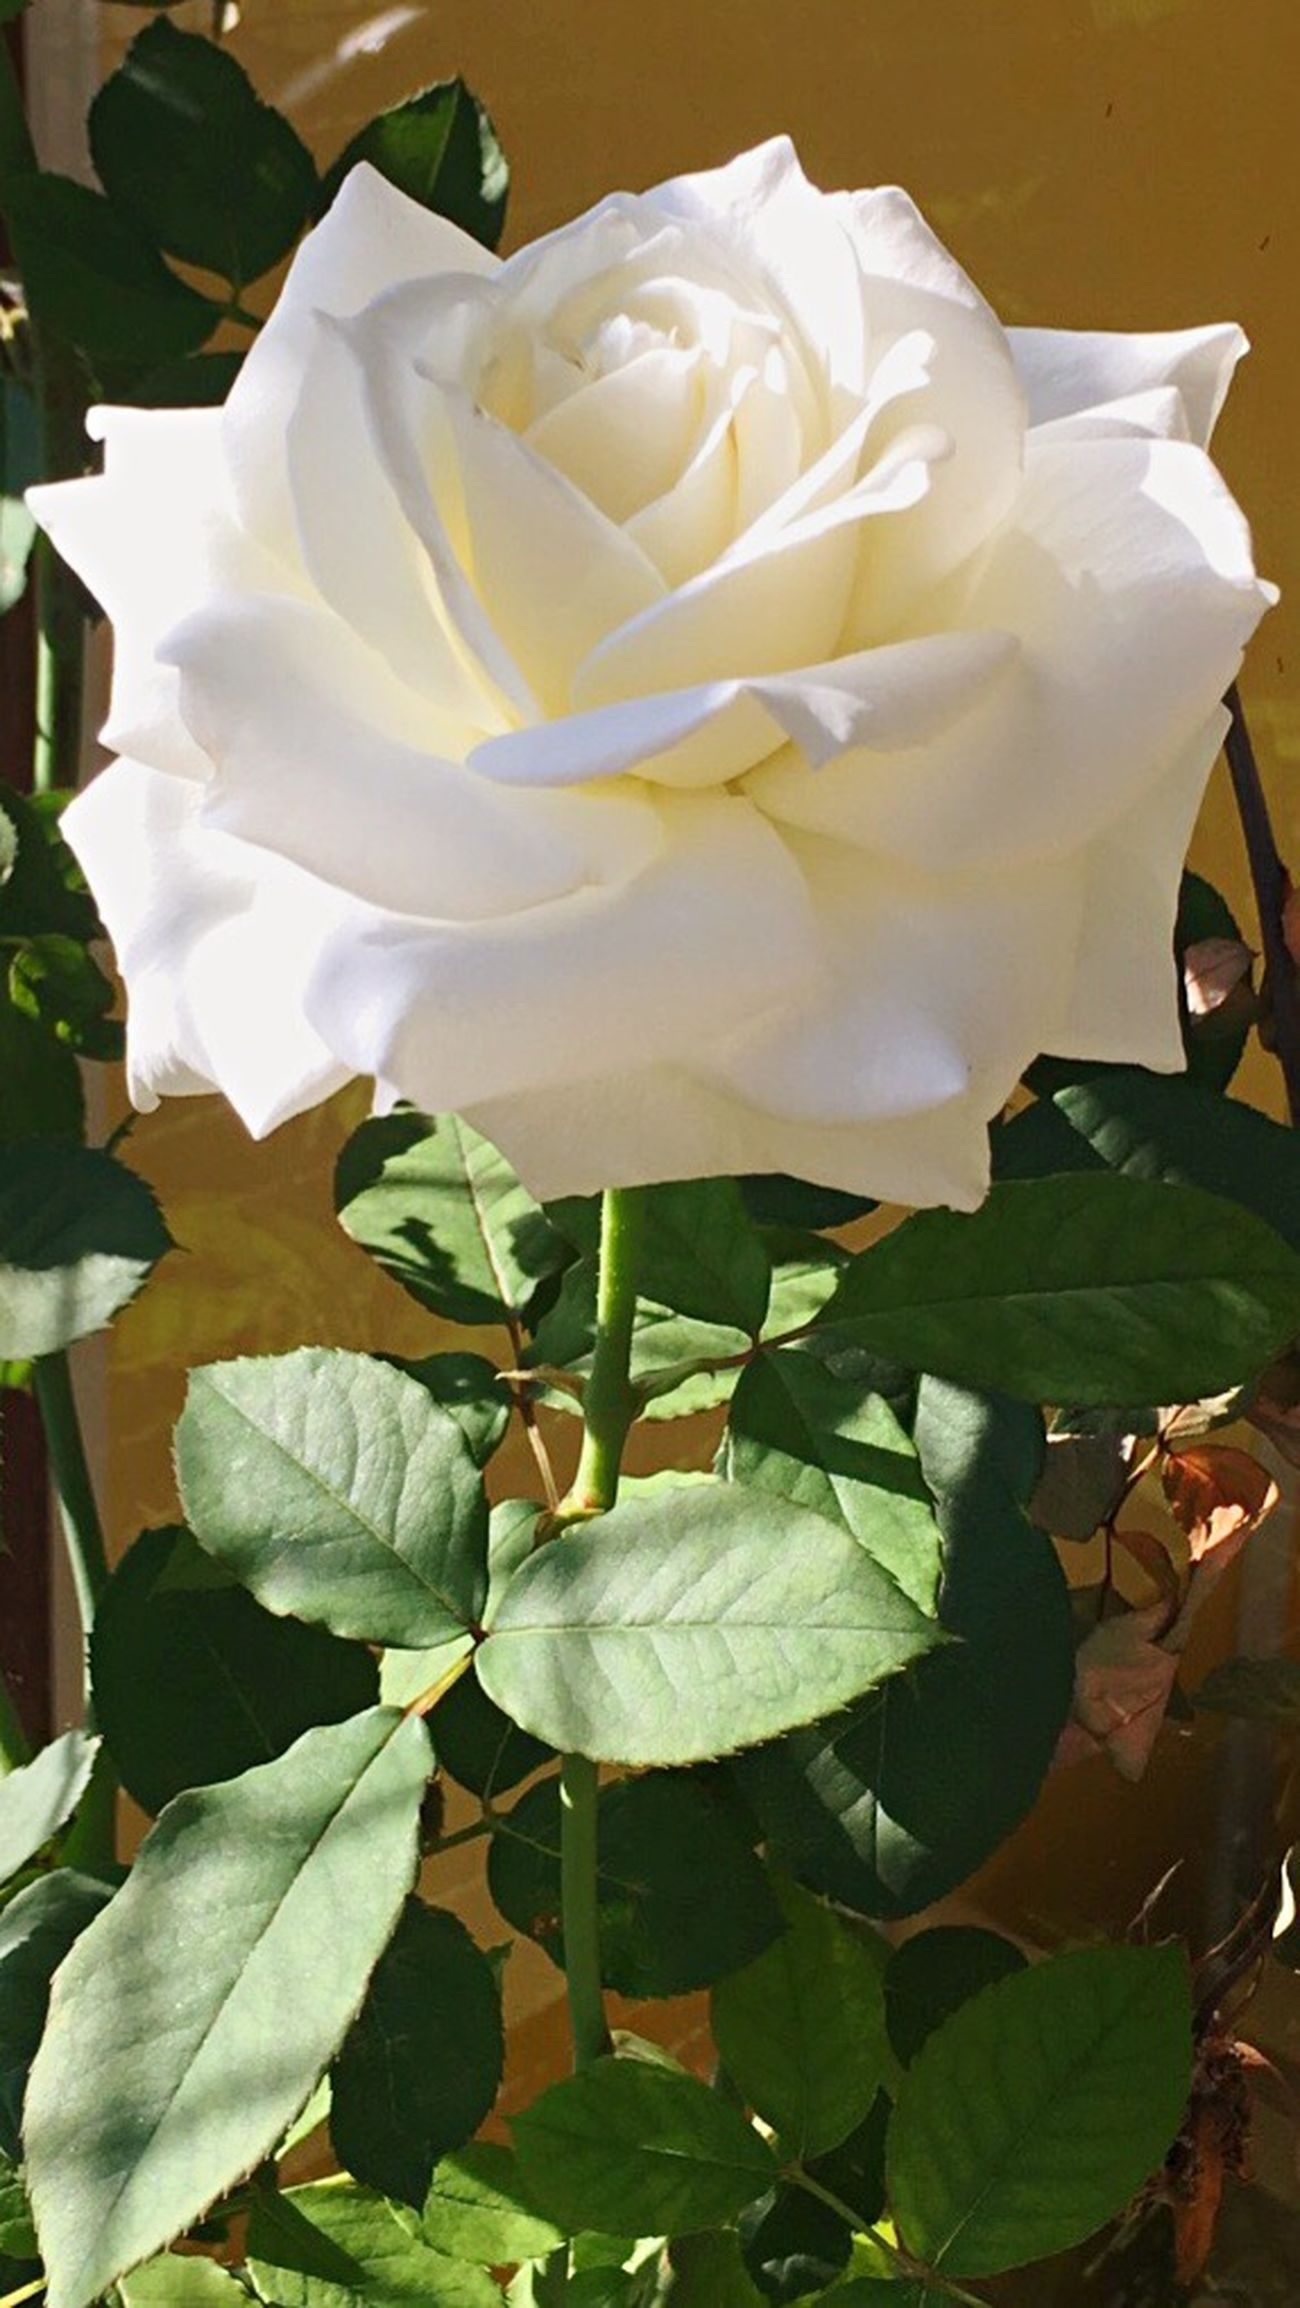 Whiterose White Flower Love Brazil Roses Sharinglove Amazing Beauty In Nature Nature_collection Nature Photography Naturelovers Nature_shooters